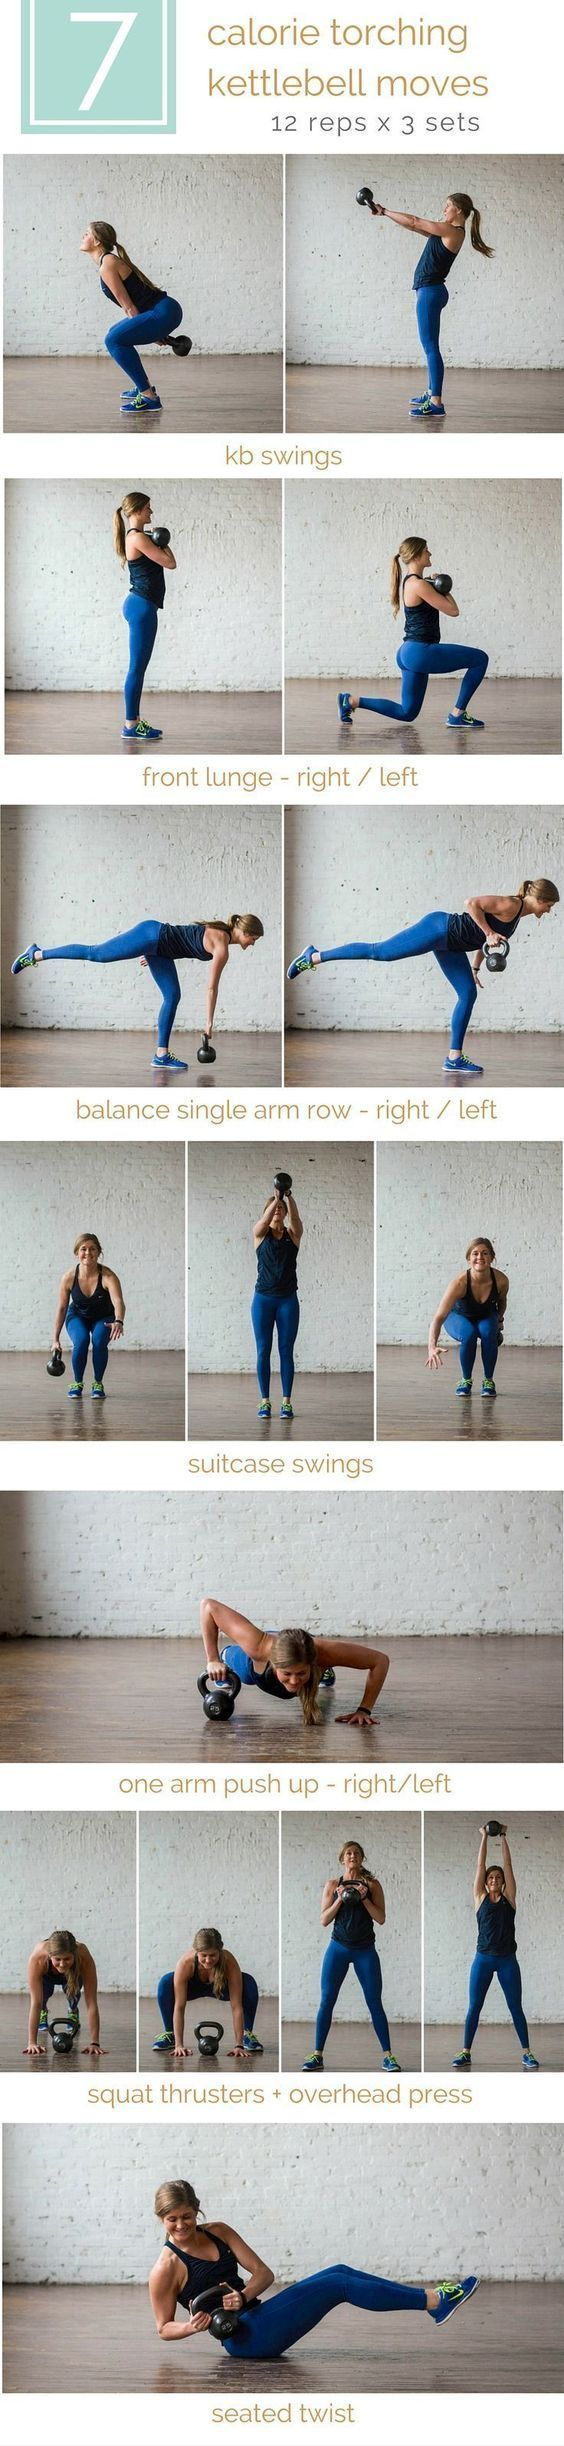 calorie torching kettlebell moves | Posted By: CustomWeightLossProgram.com